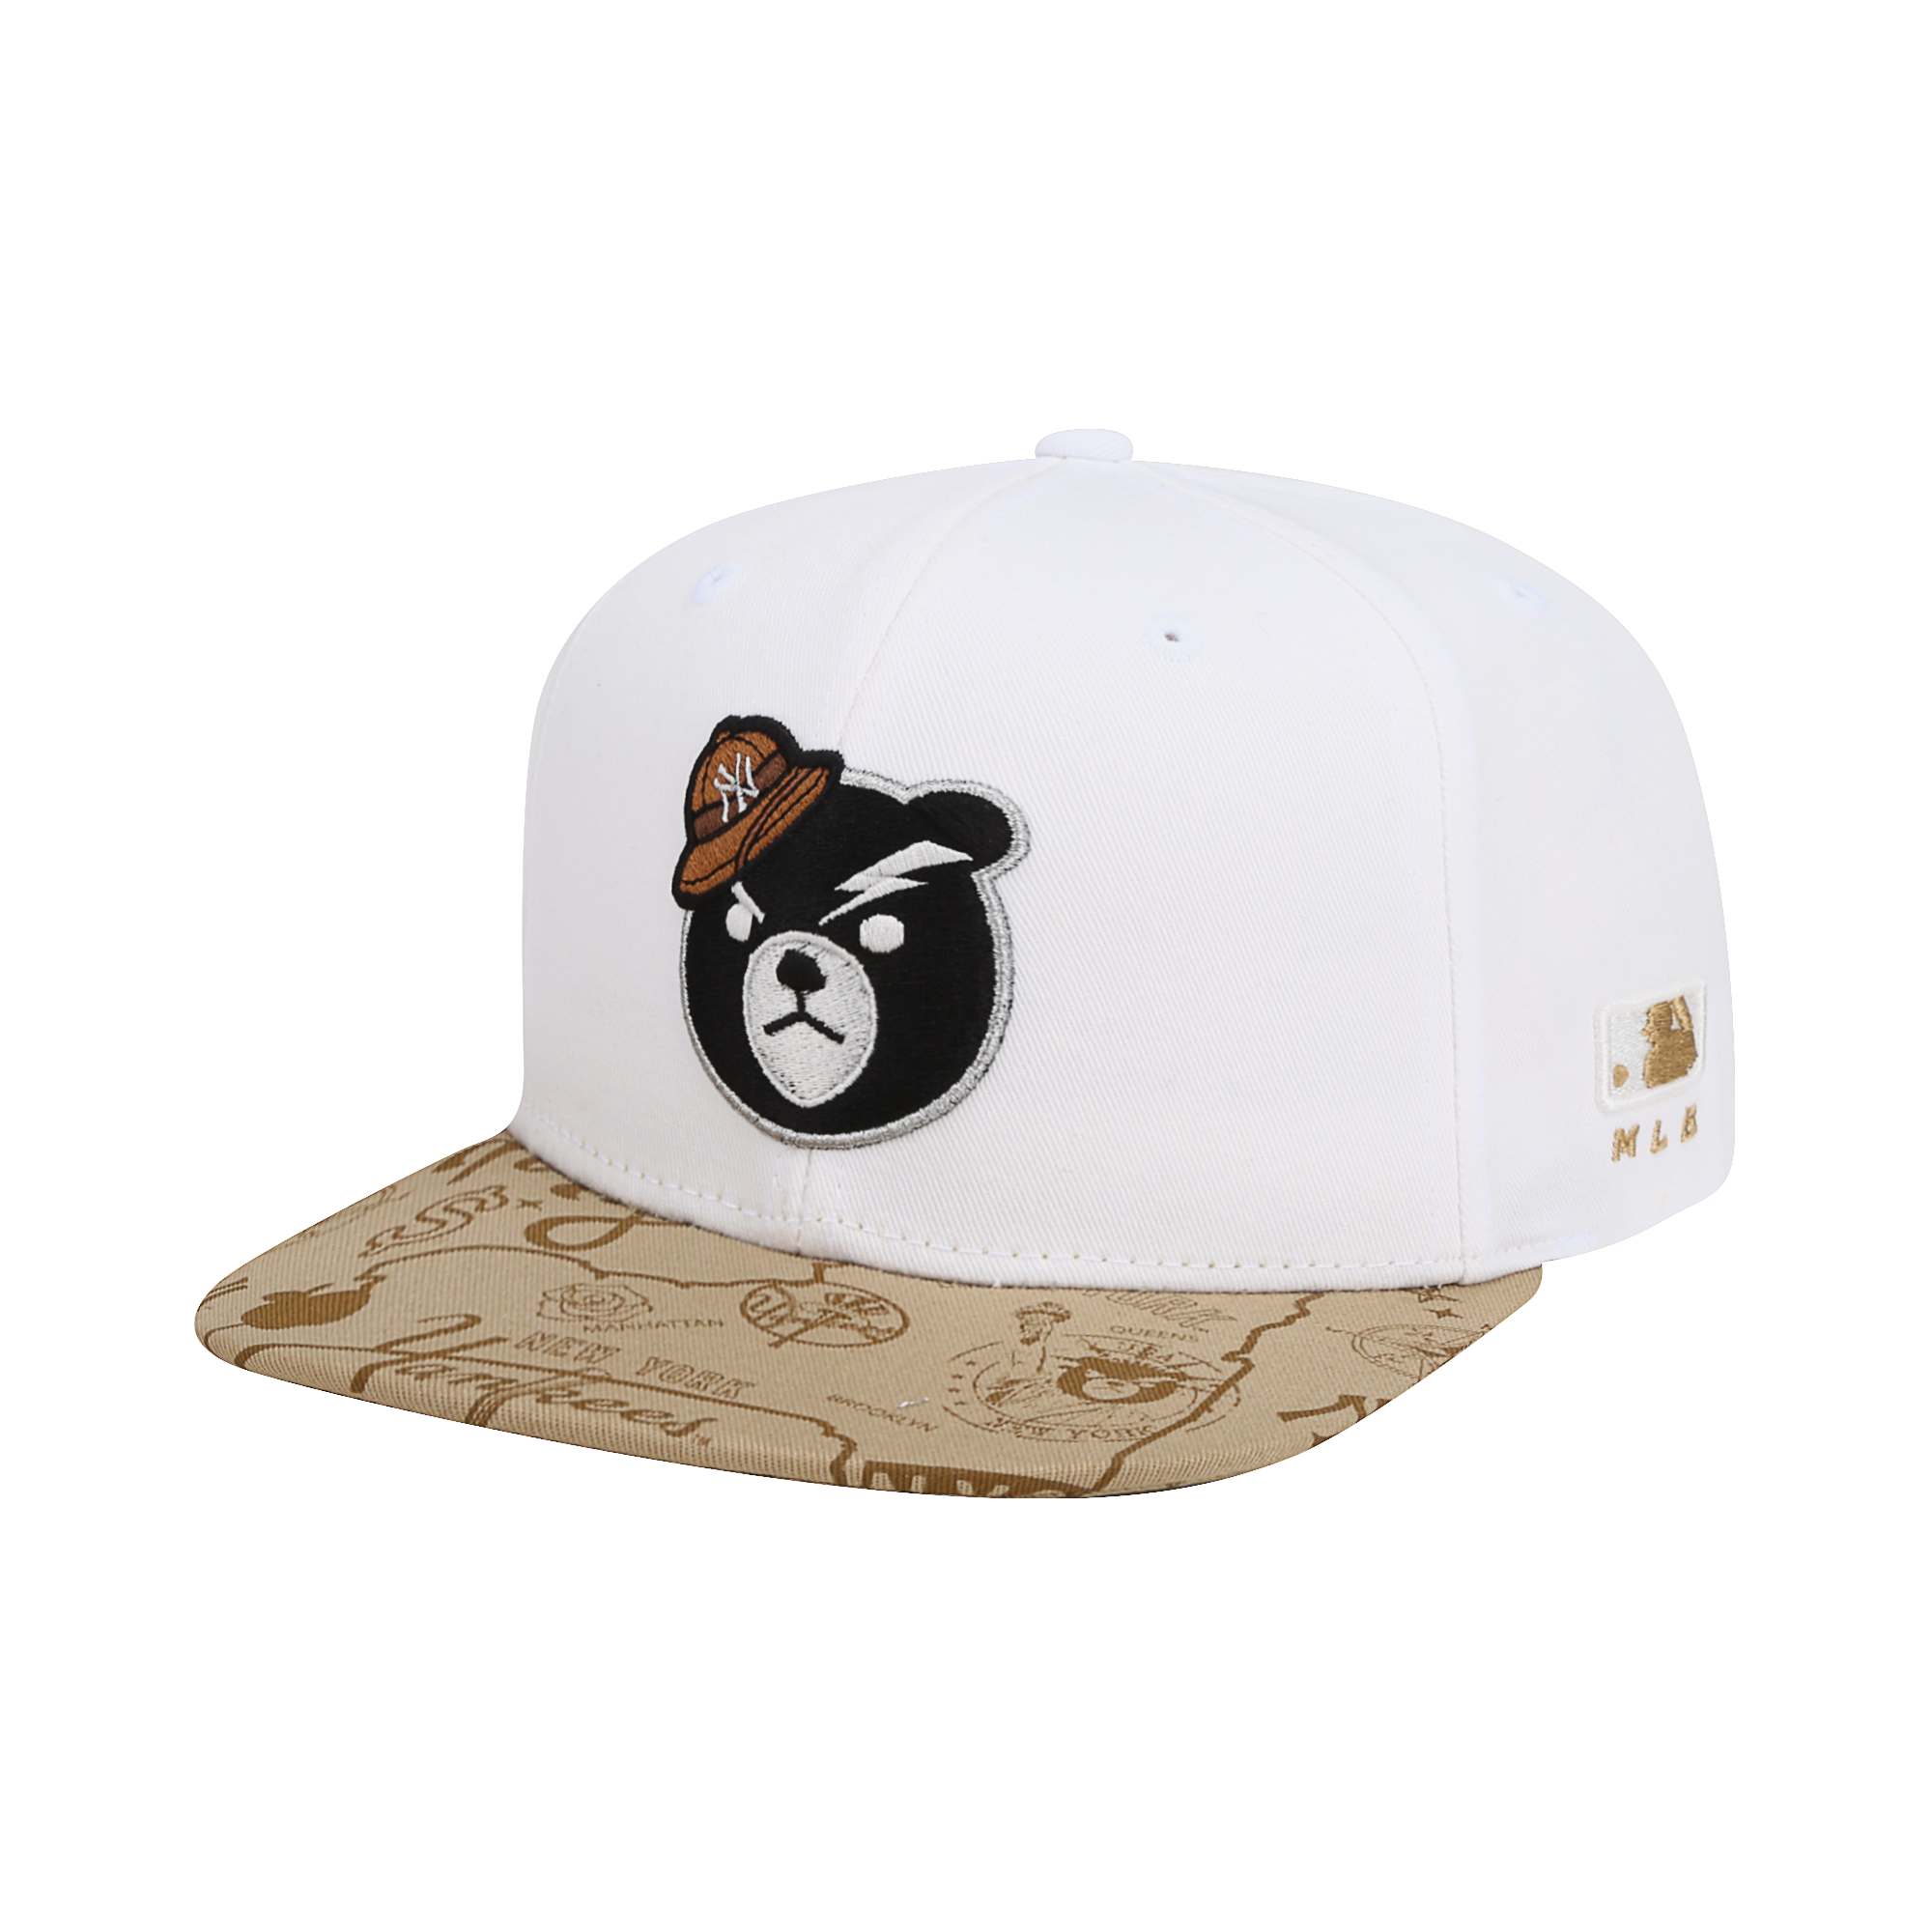 NEW YORK YANKEES JELLY BEAR EXPLORER SNAPBACK